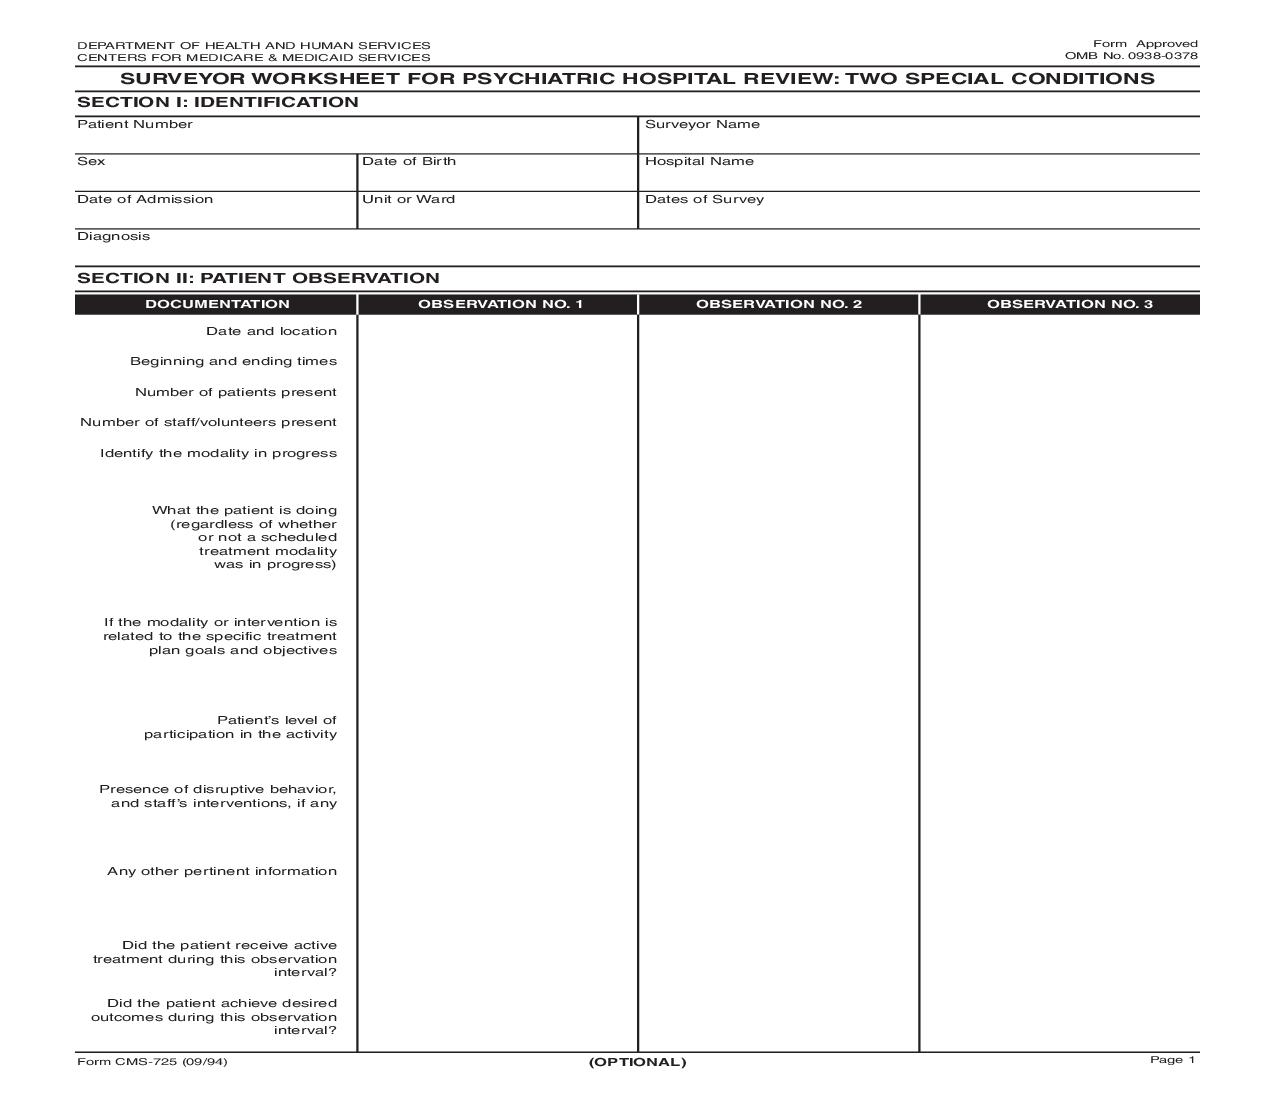 Surveyor Worksheet For Pyschiatric Hospital Review Two Special Conditions {CMS-725} | Pdf Fpdf Doc Docx | Official Federal Forms